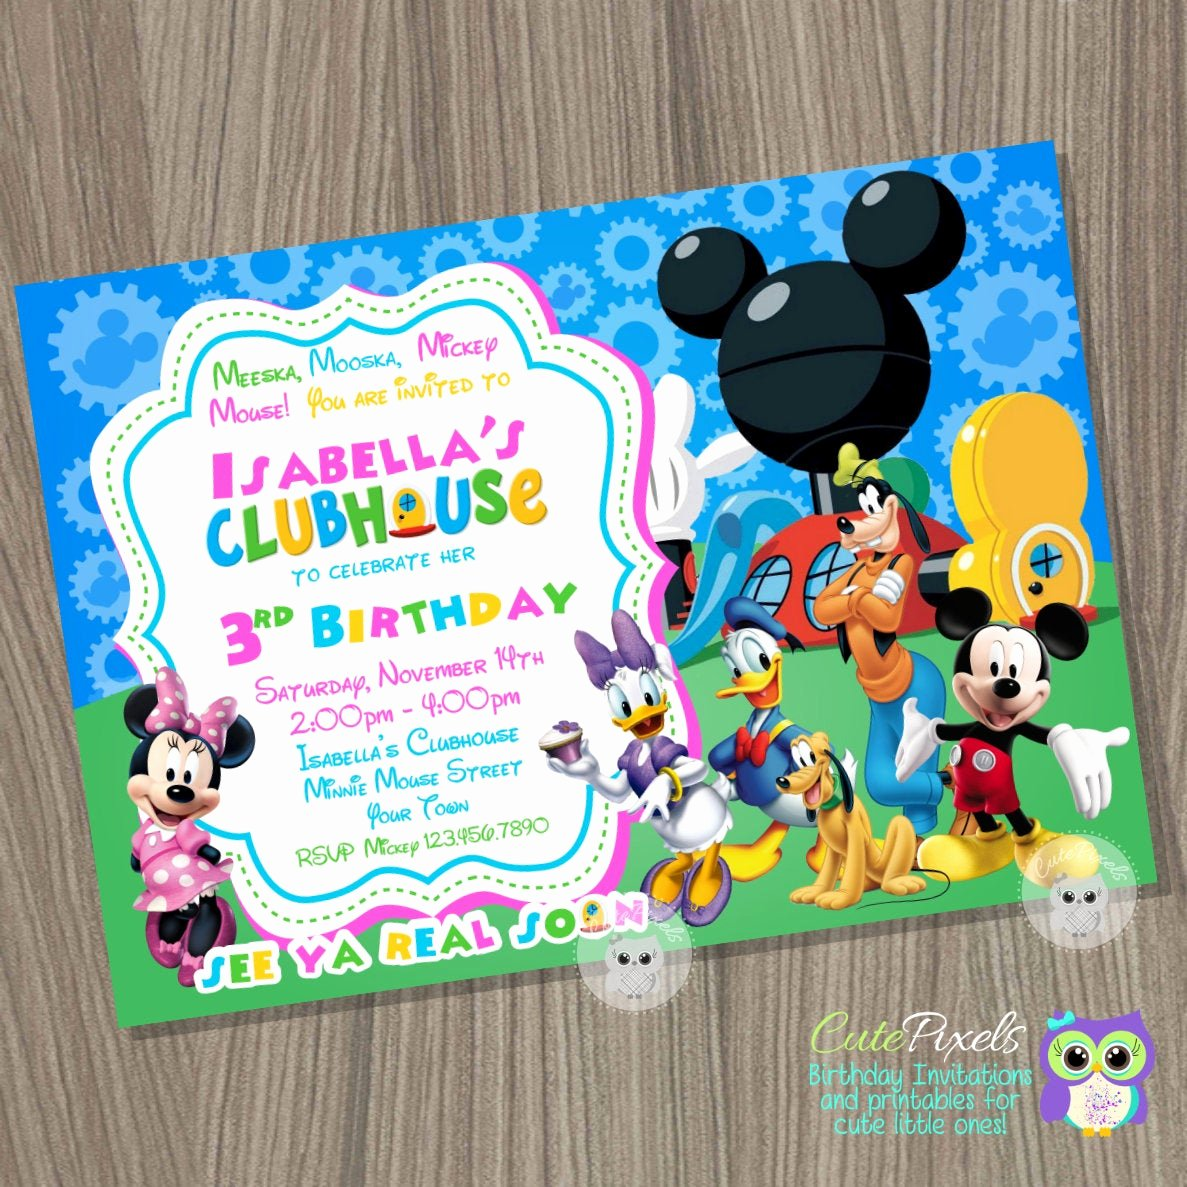 Minnie Mouse Clubhouse Invitations Beautiful Minnie Mouse Invitation Mickey Mouse Clubhouse Invitation